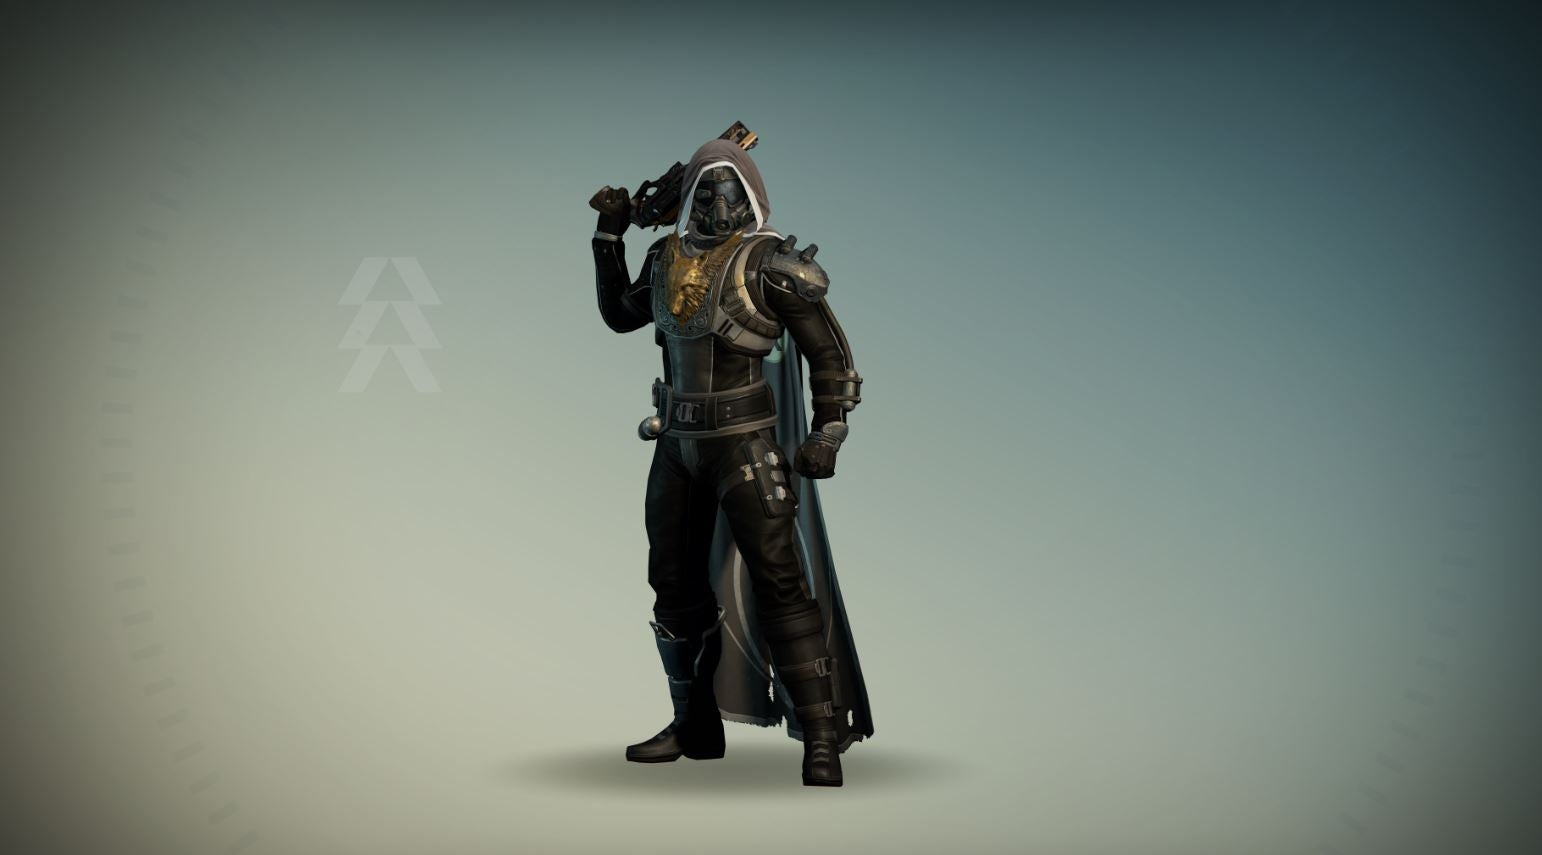 I Played 45 Minutes Of Destiny And It Was Kind Boring